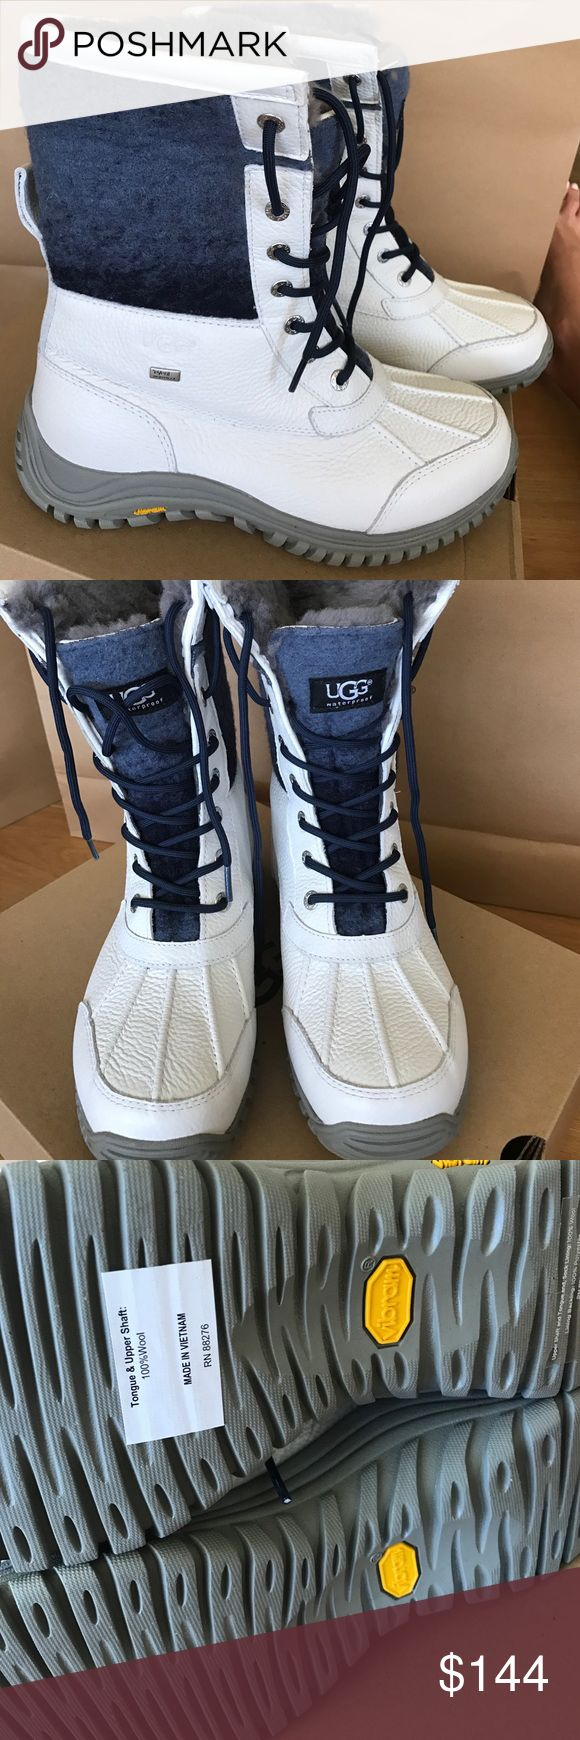 Ugg adirondack II in white size 9.5 Beautiful UGG adirondack boots are waterproof and weather rated for up to -20c. Beautiful white leather and blue detail, come with extra laces. New with box UGG Shoes Winter & Rain Boots